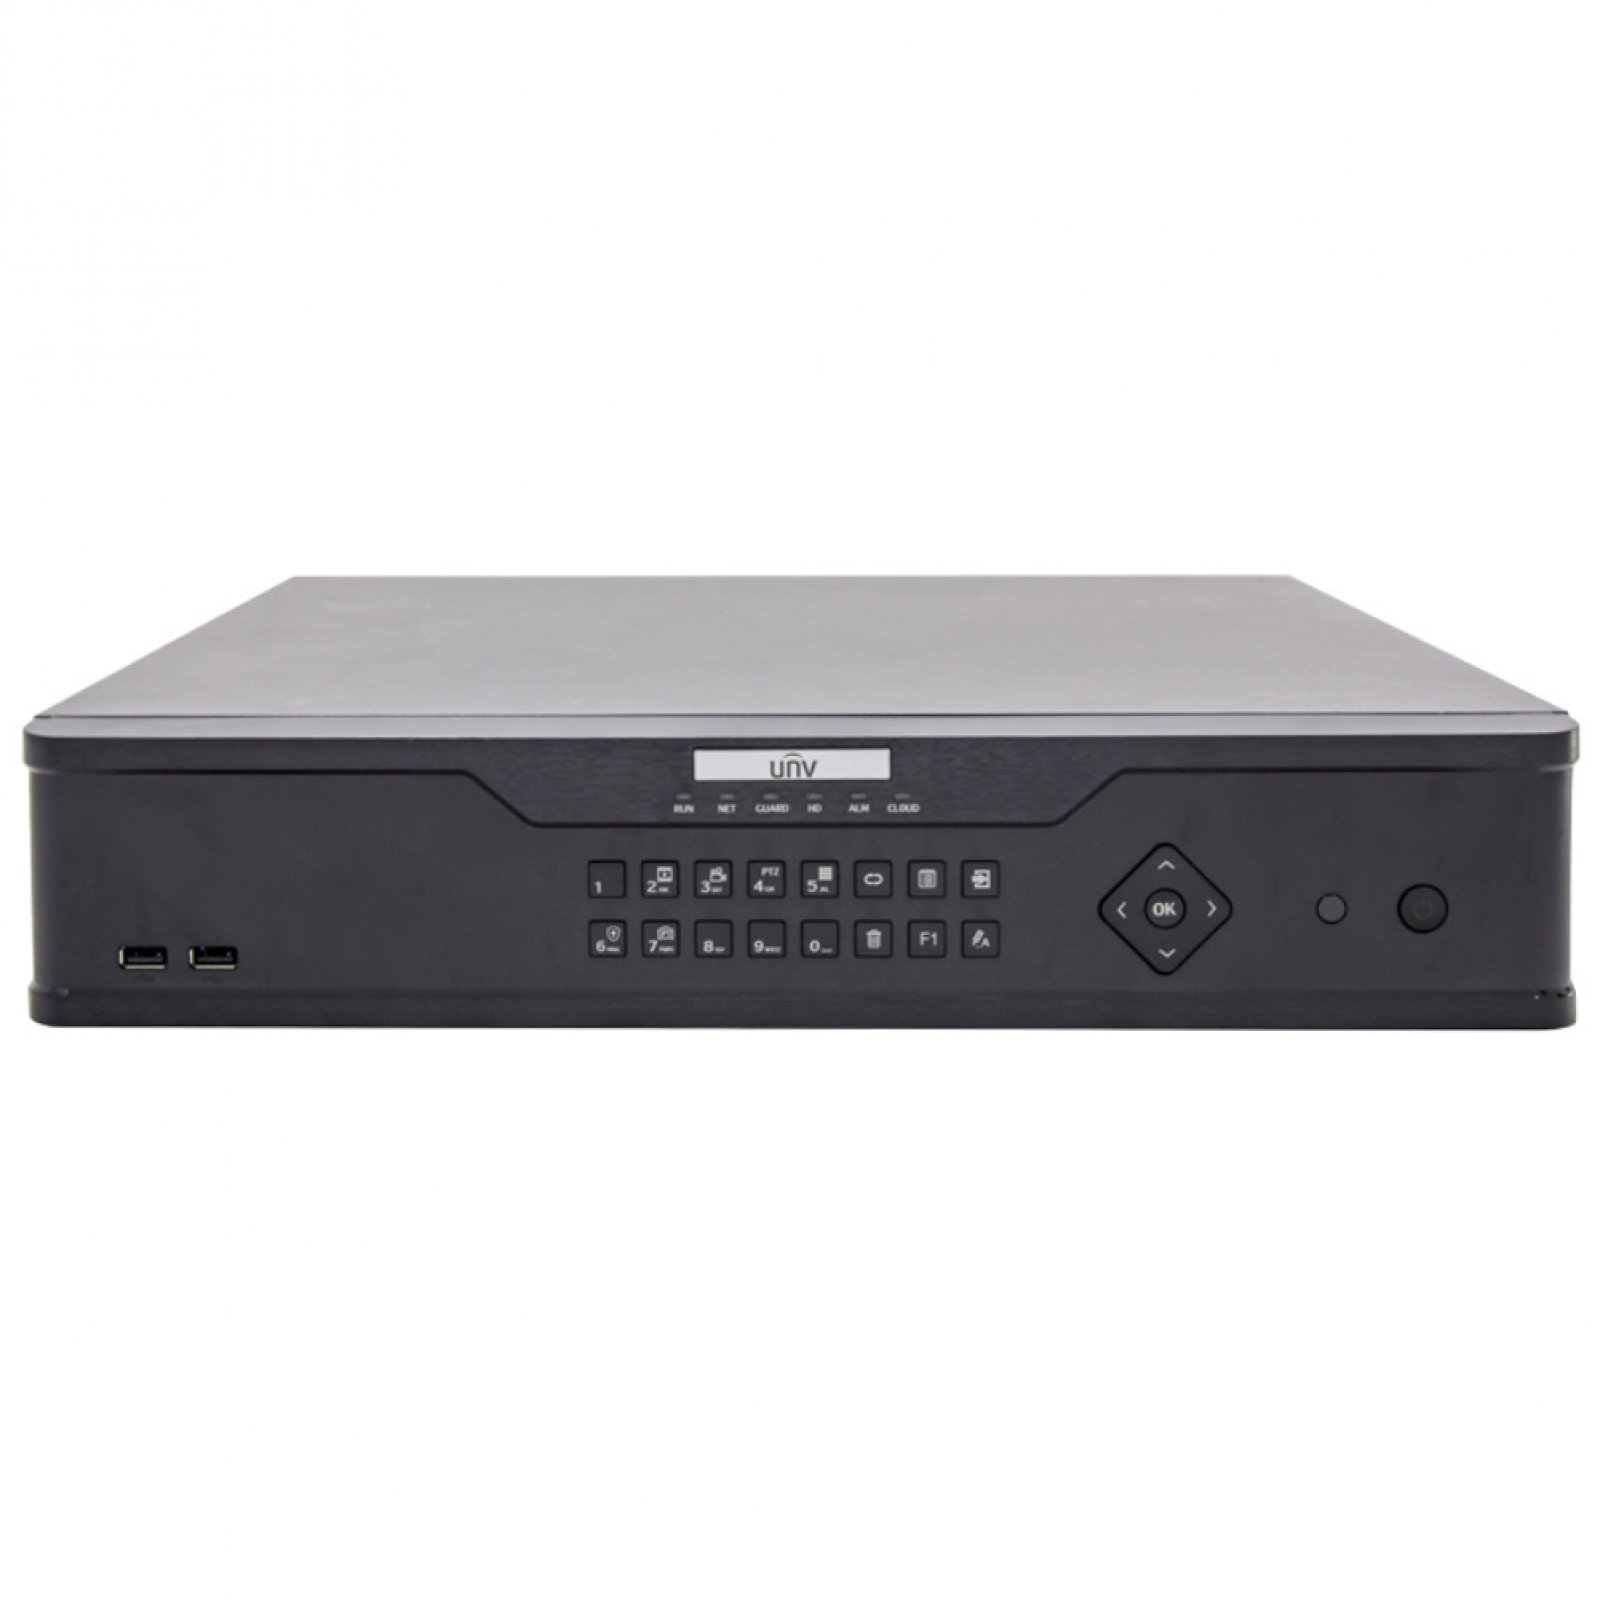 NVR304-32EP-B, 32 Channel NVR 16 Built-In PoE Plug N Play, 4xHDD